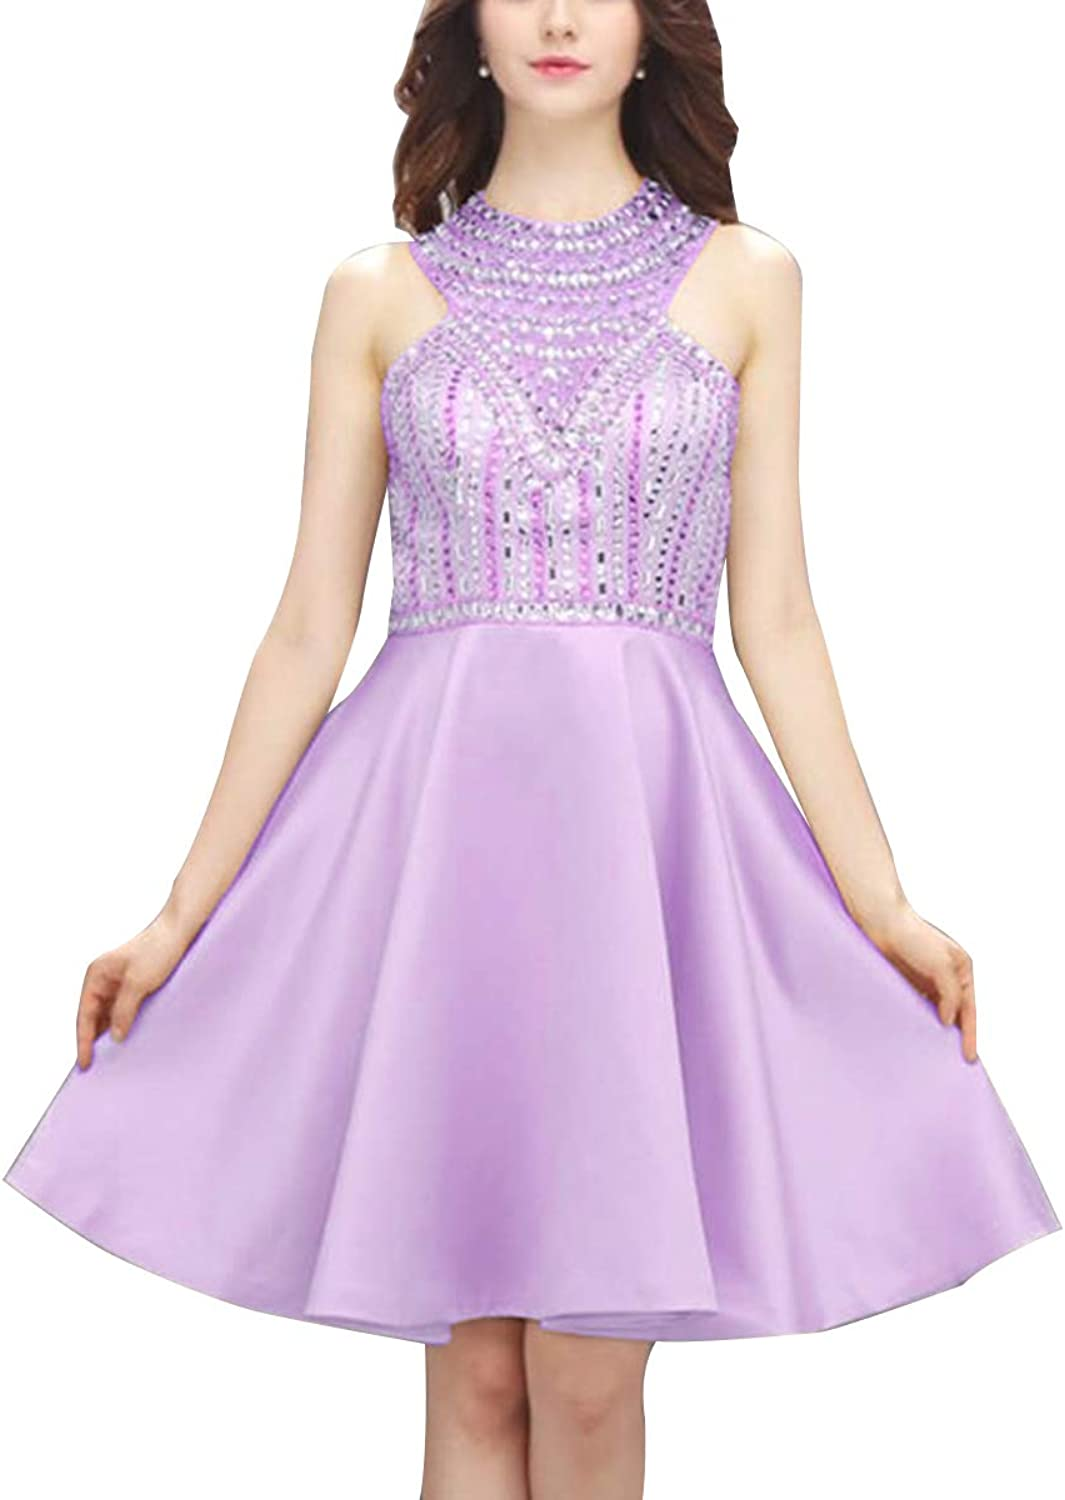 Sequined High Neck Homecoming Dresses Short ALine Backless Cocktail Party Gowns